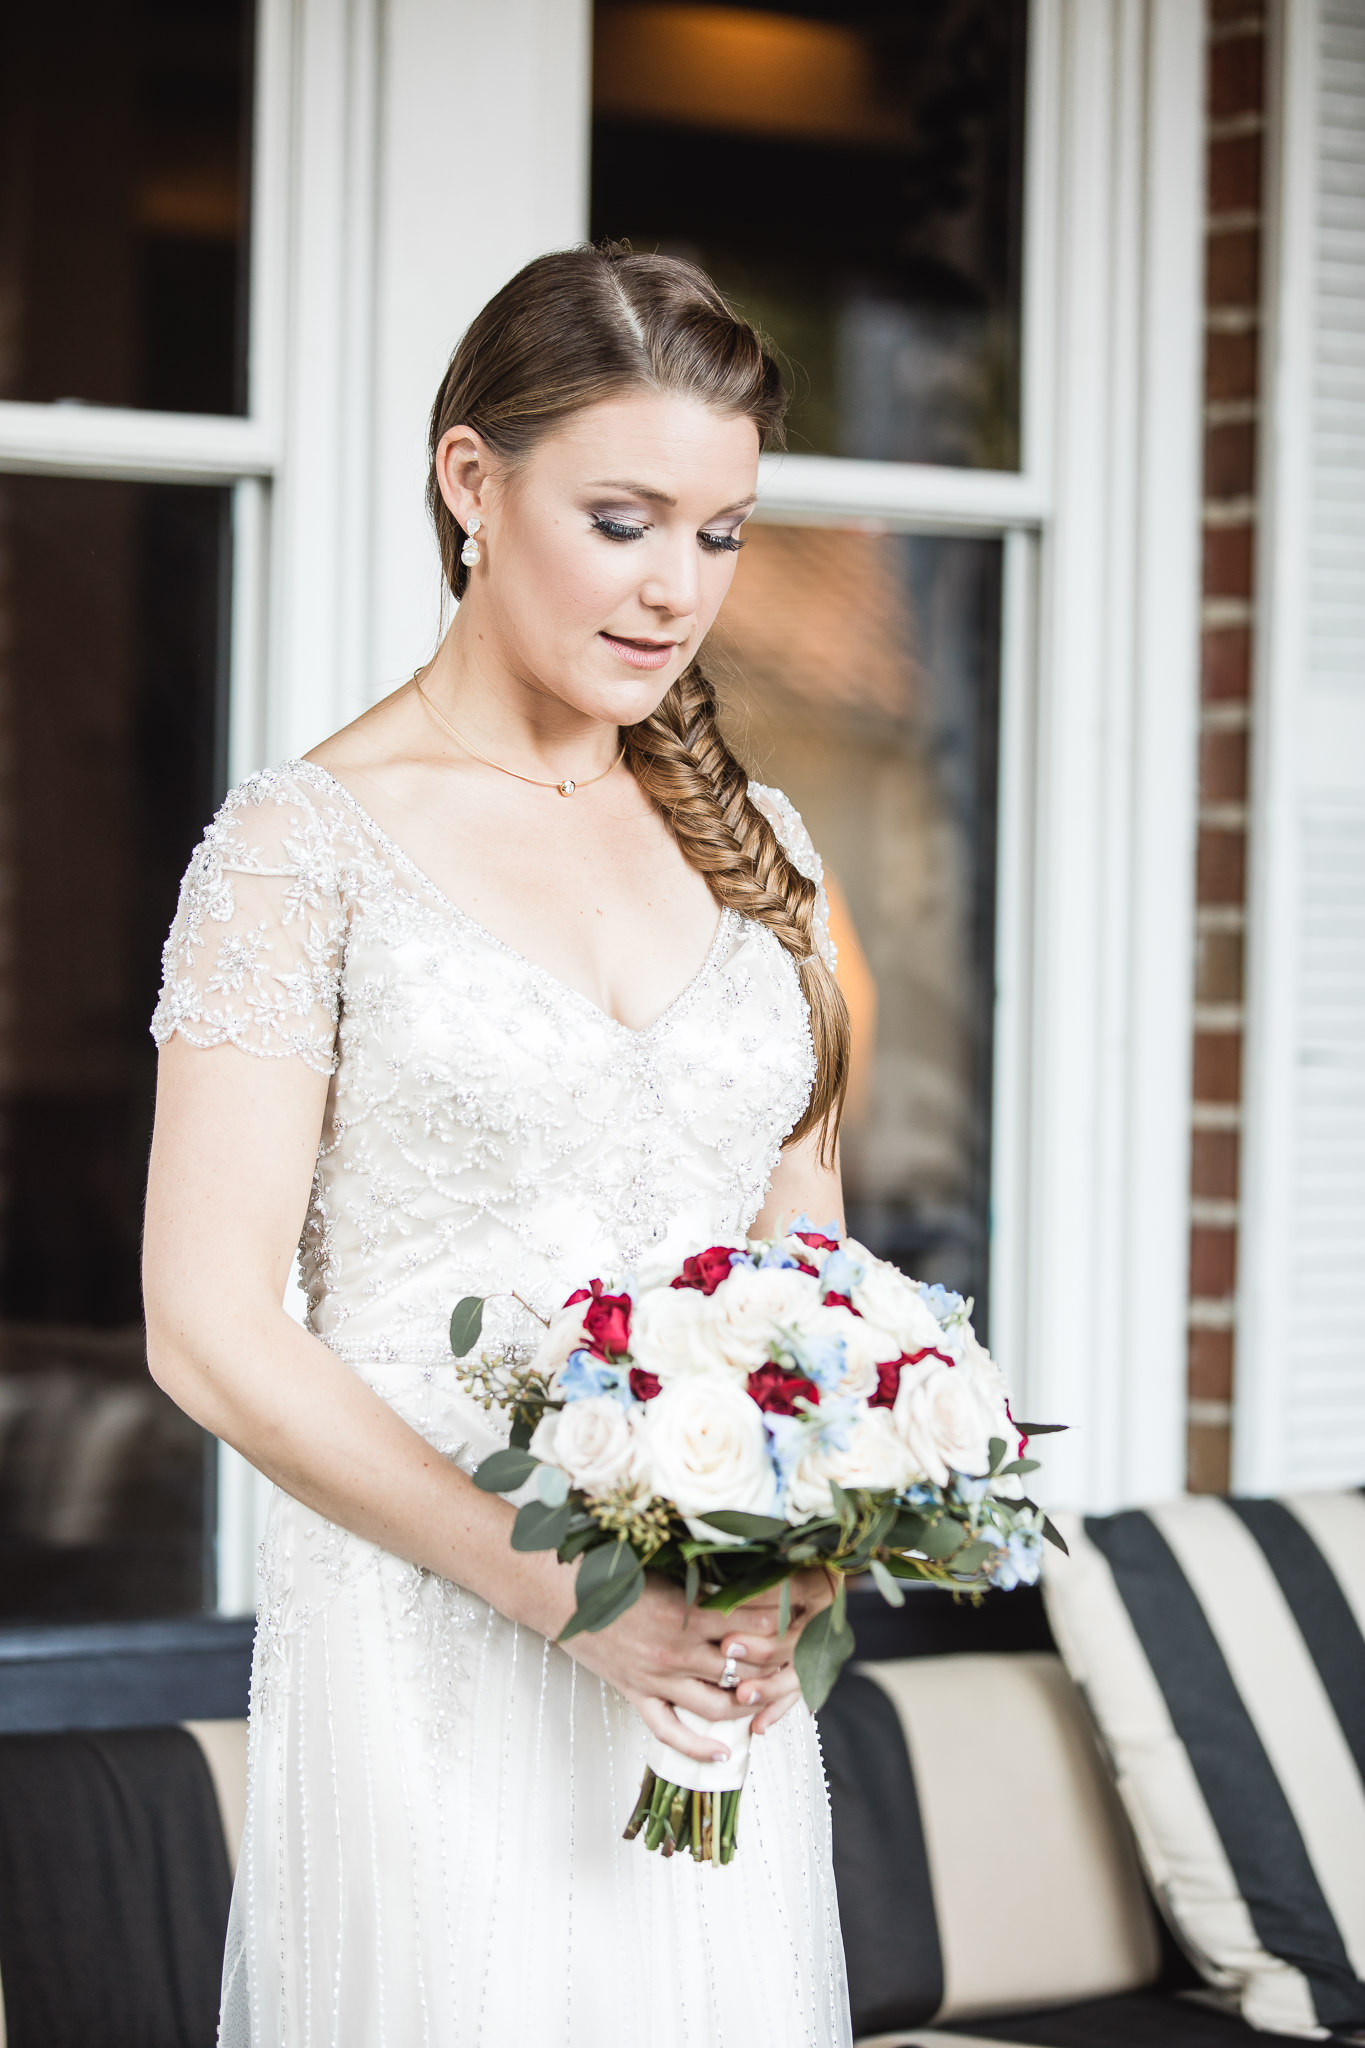 Photograph of bride in thought at The Hollander Hotel in St. Petersburg, Florida